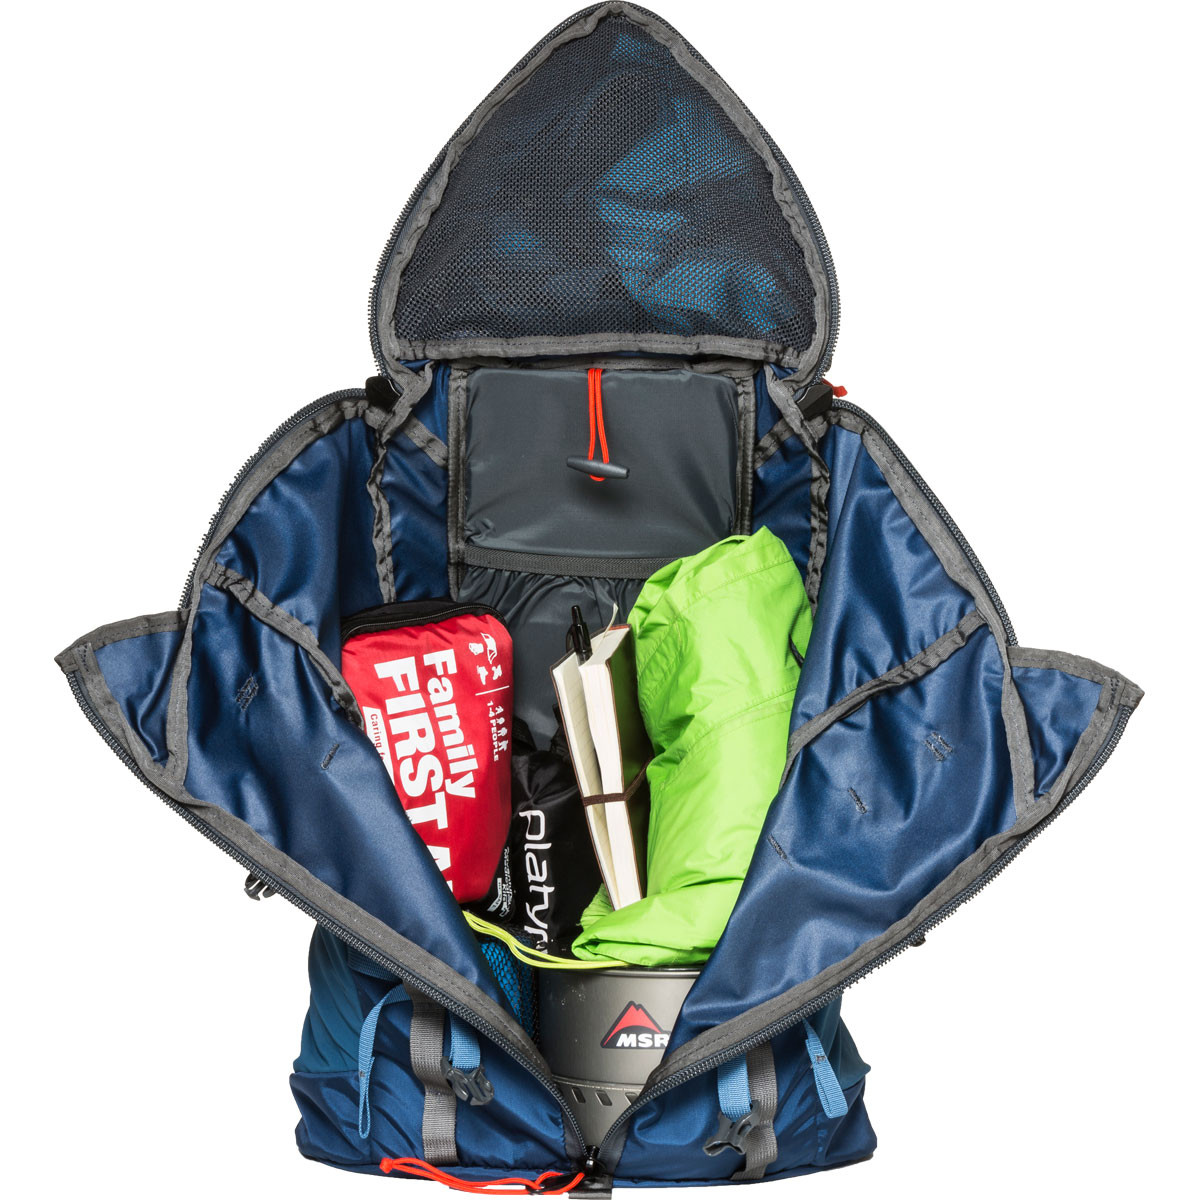 ex_scree_30-nightfall-mid-size-hiking-backpack-open.jpg